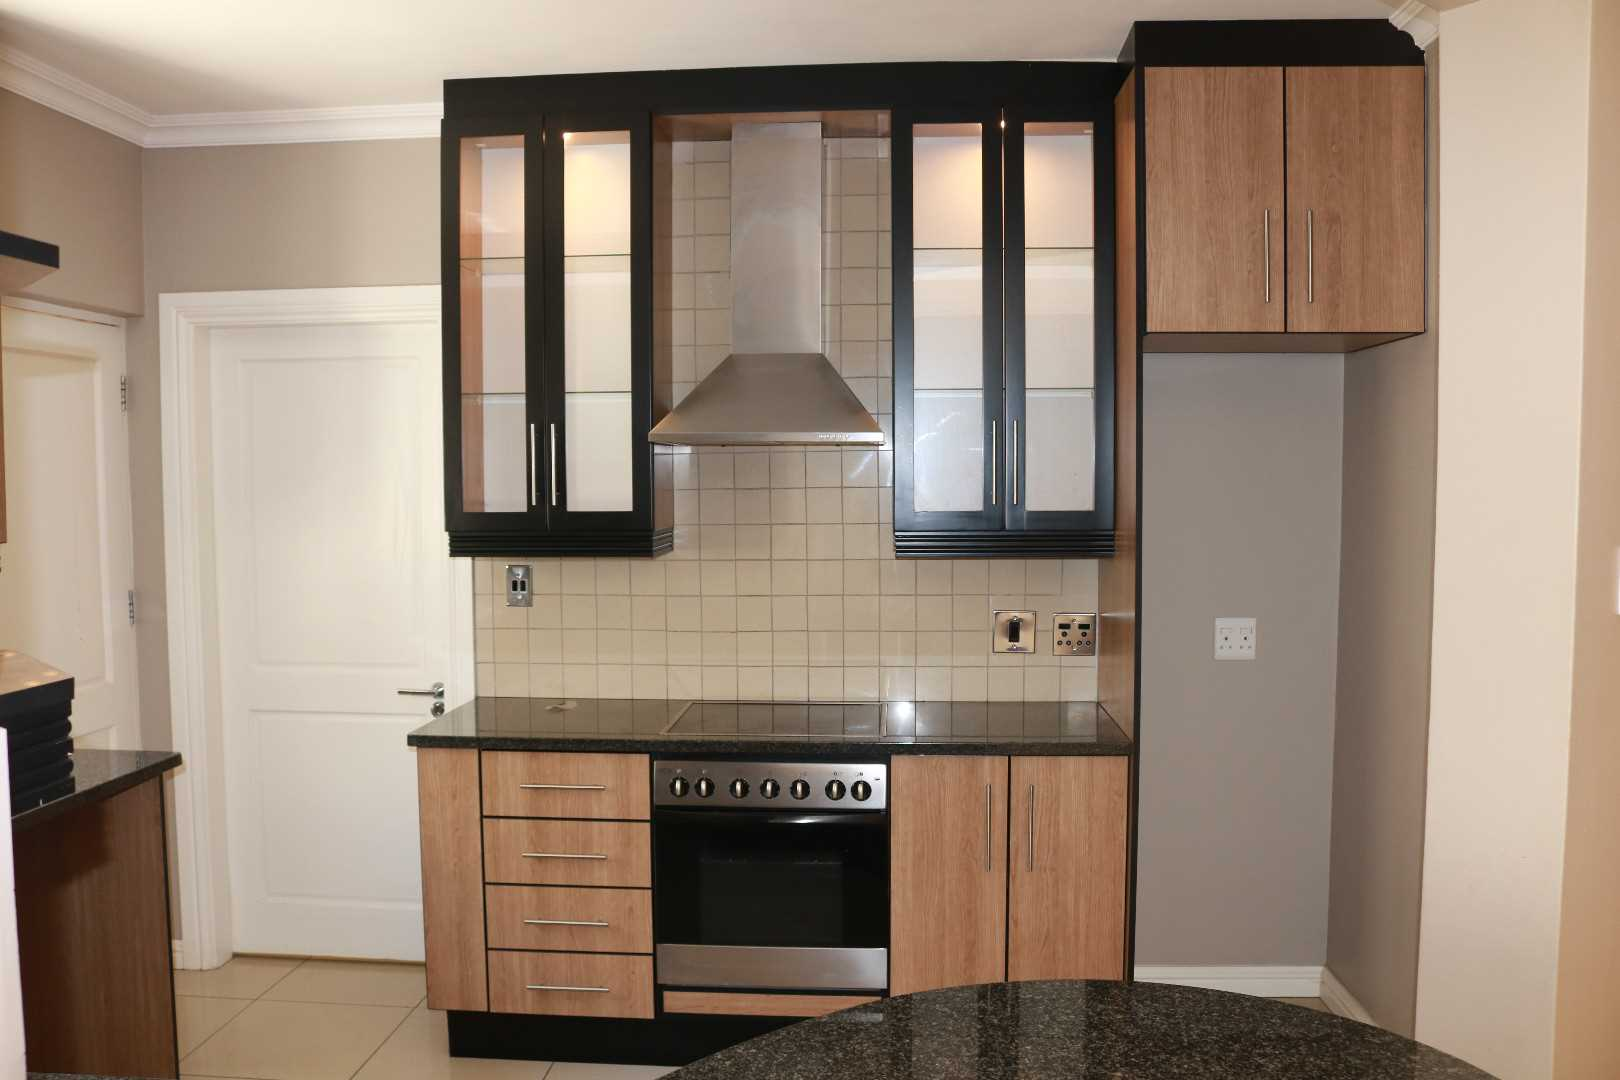 Kitchen showing oven and hobb